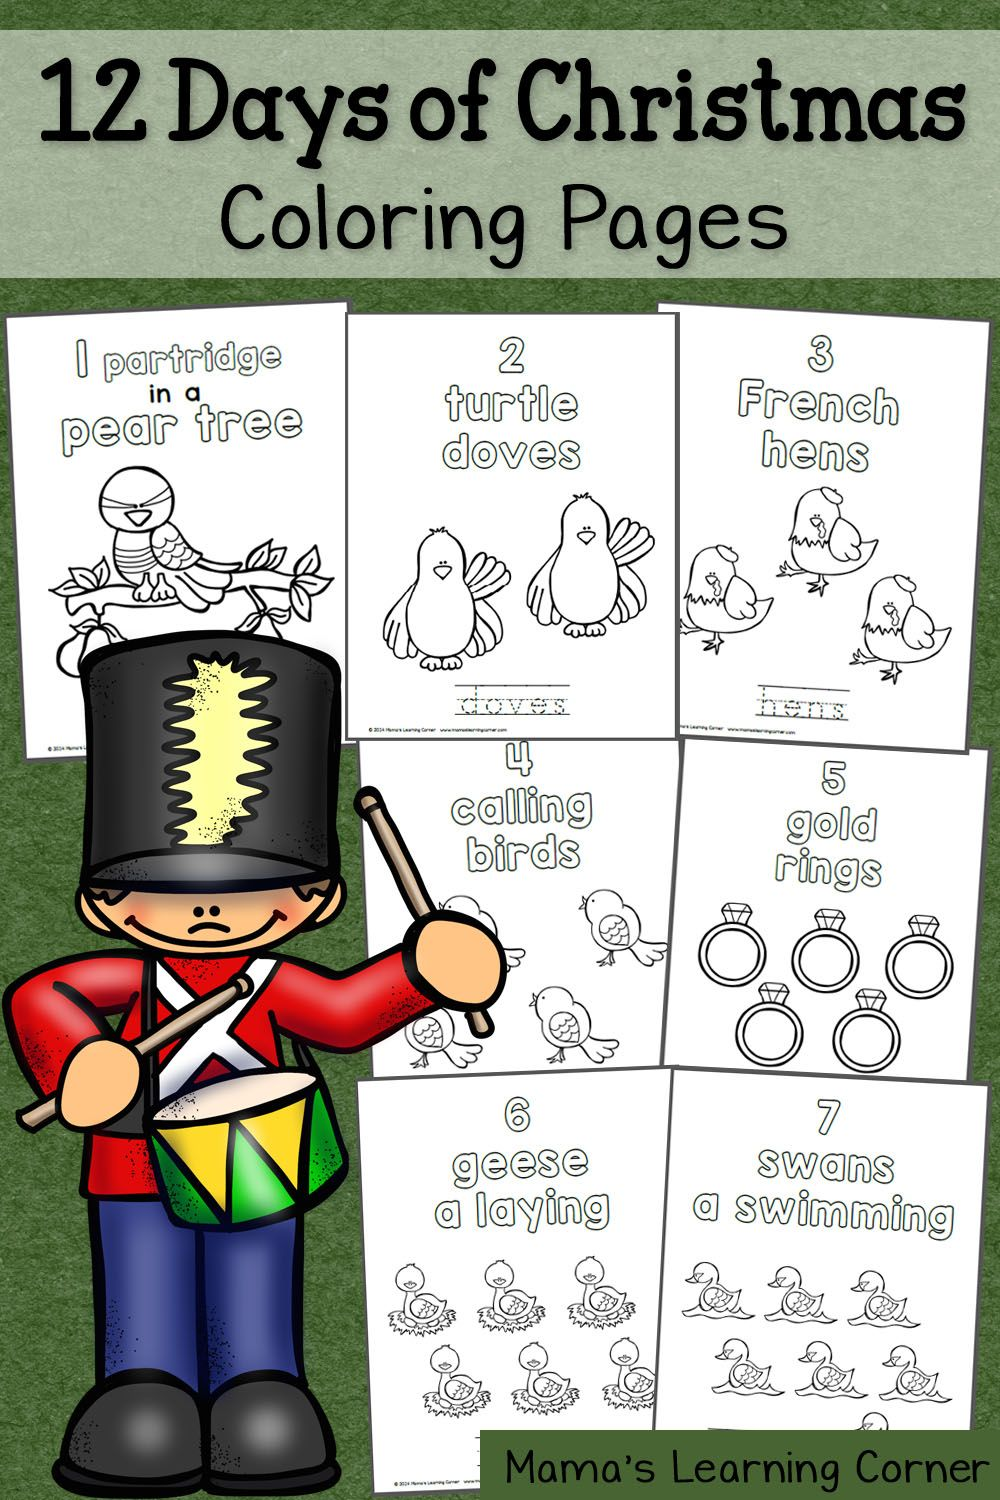 12 Days of Christmas Coloring Pages | Coloring books, School and ...